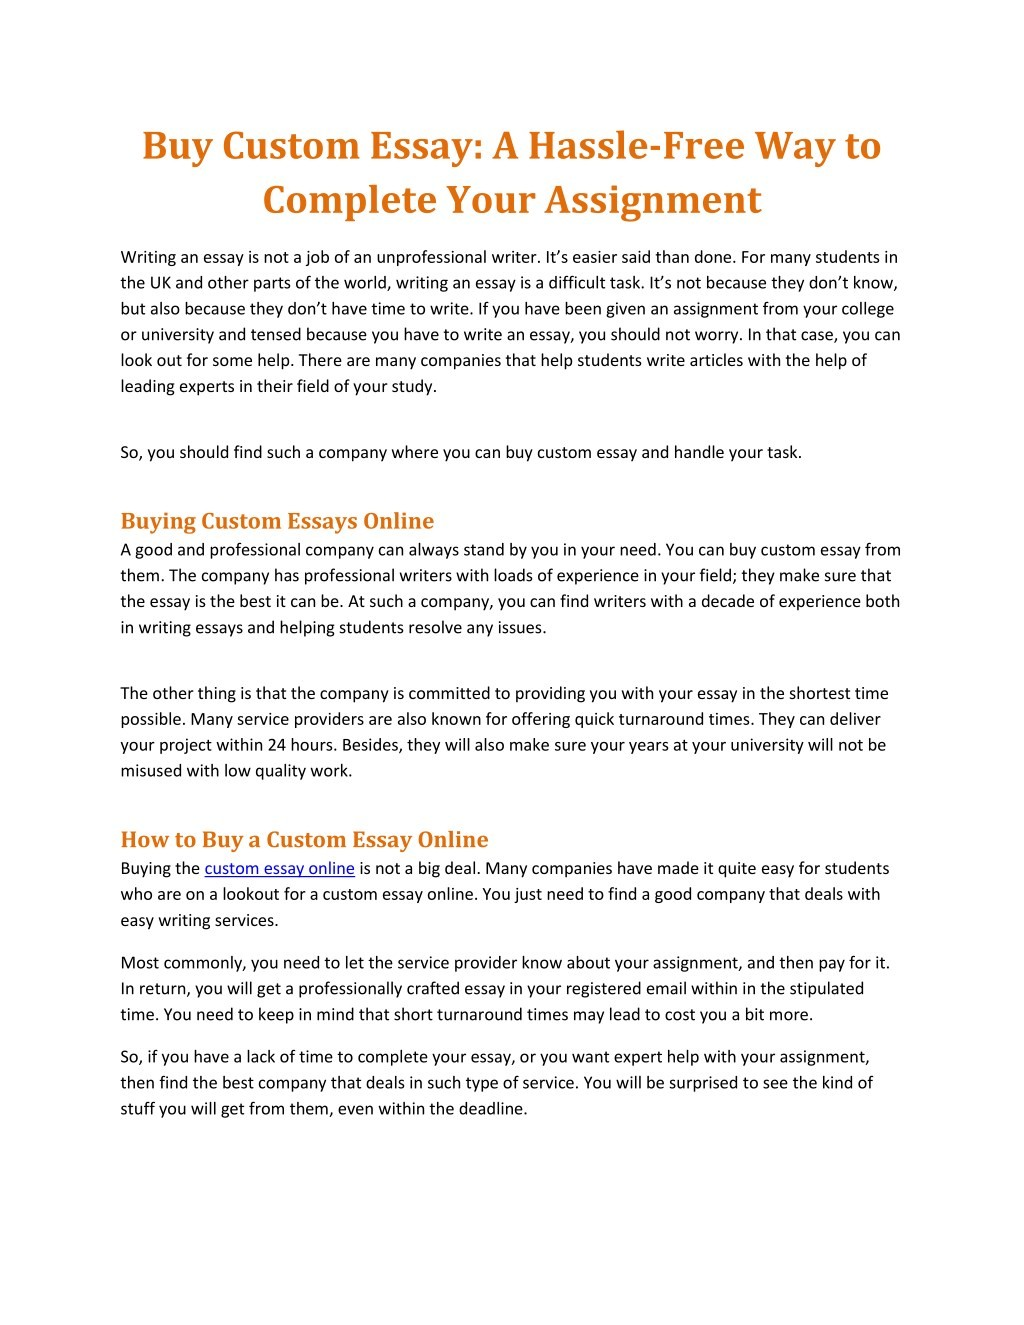 001 Buy Custom Essay Hassle Free Way To Complete L Beautiful Cheap Writing Online College Essays Large